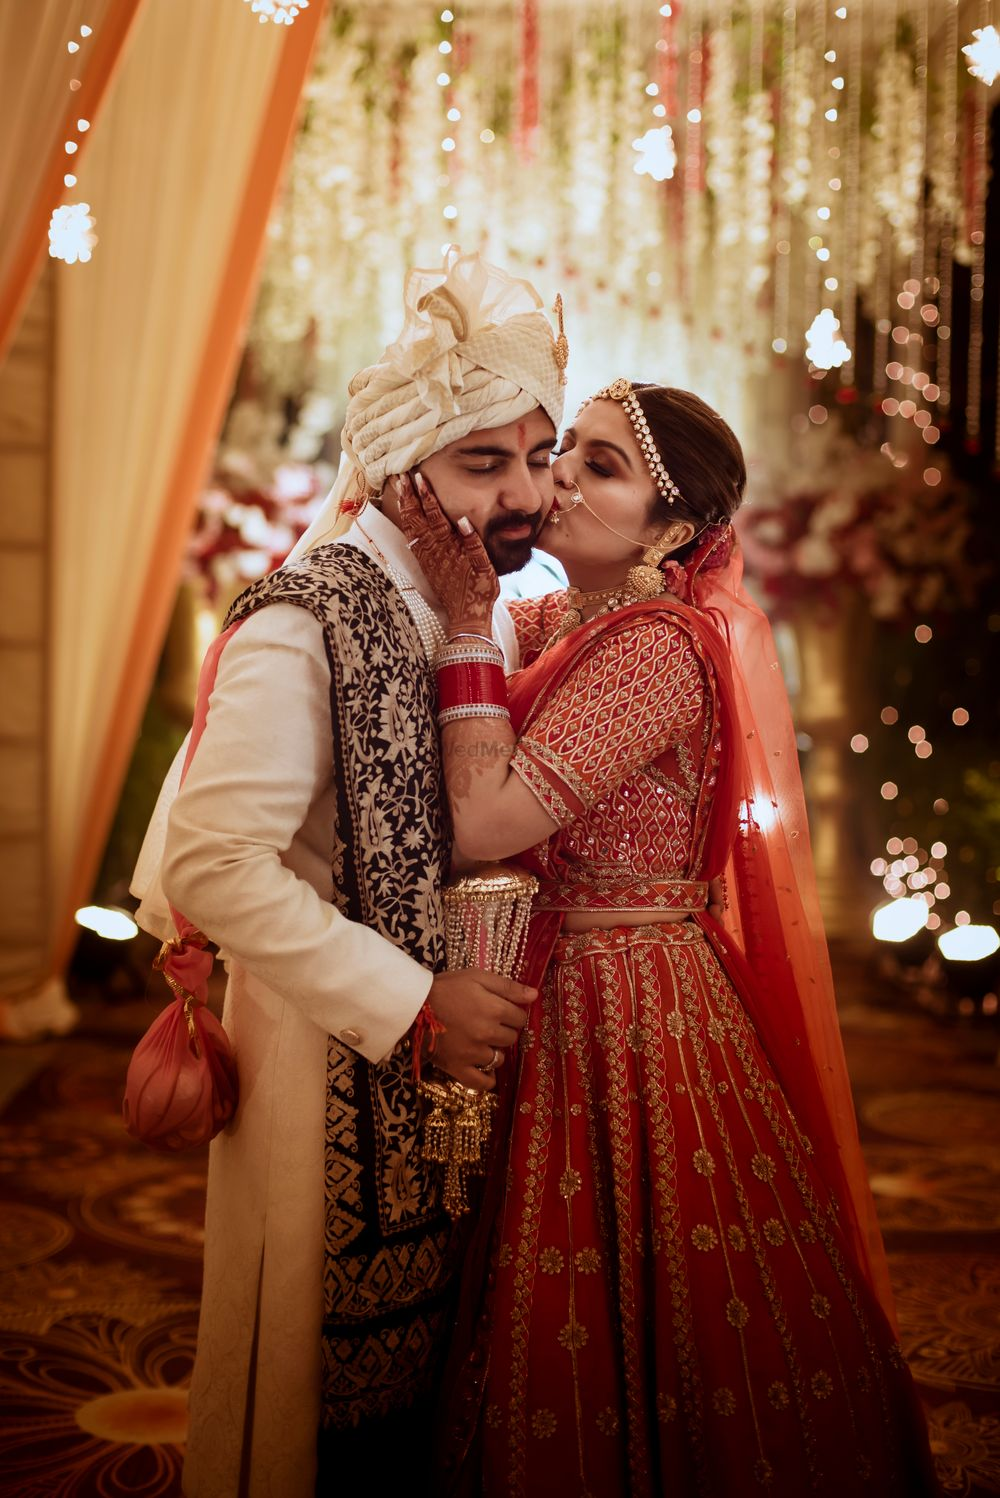 Photo From Pavni + Karan - By Moving Pictures